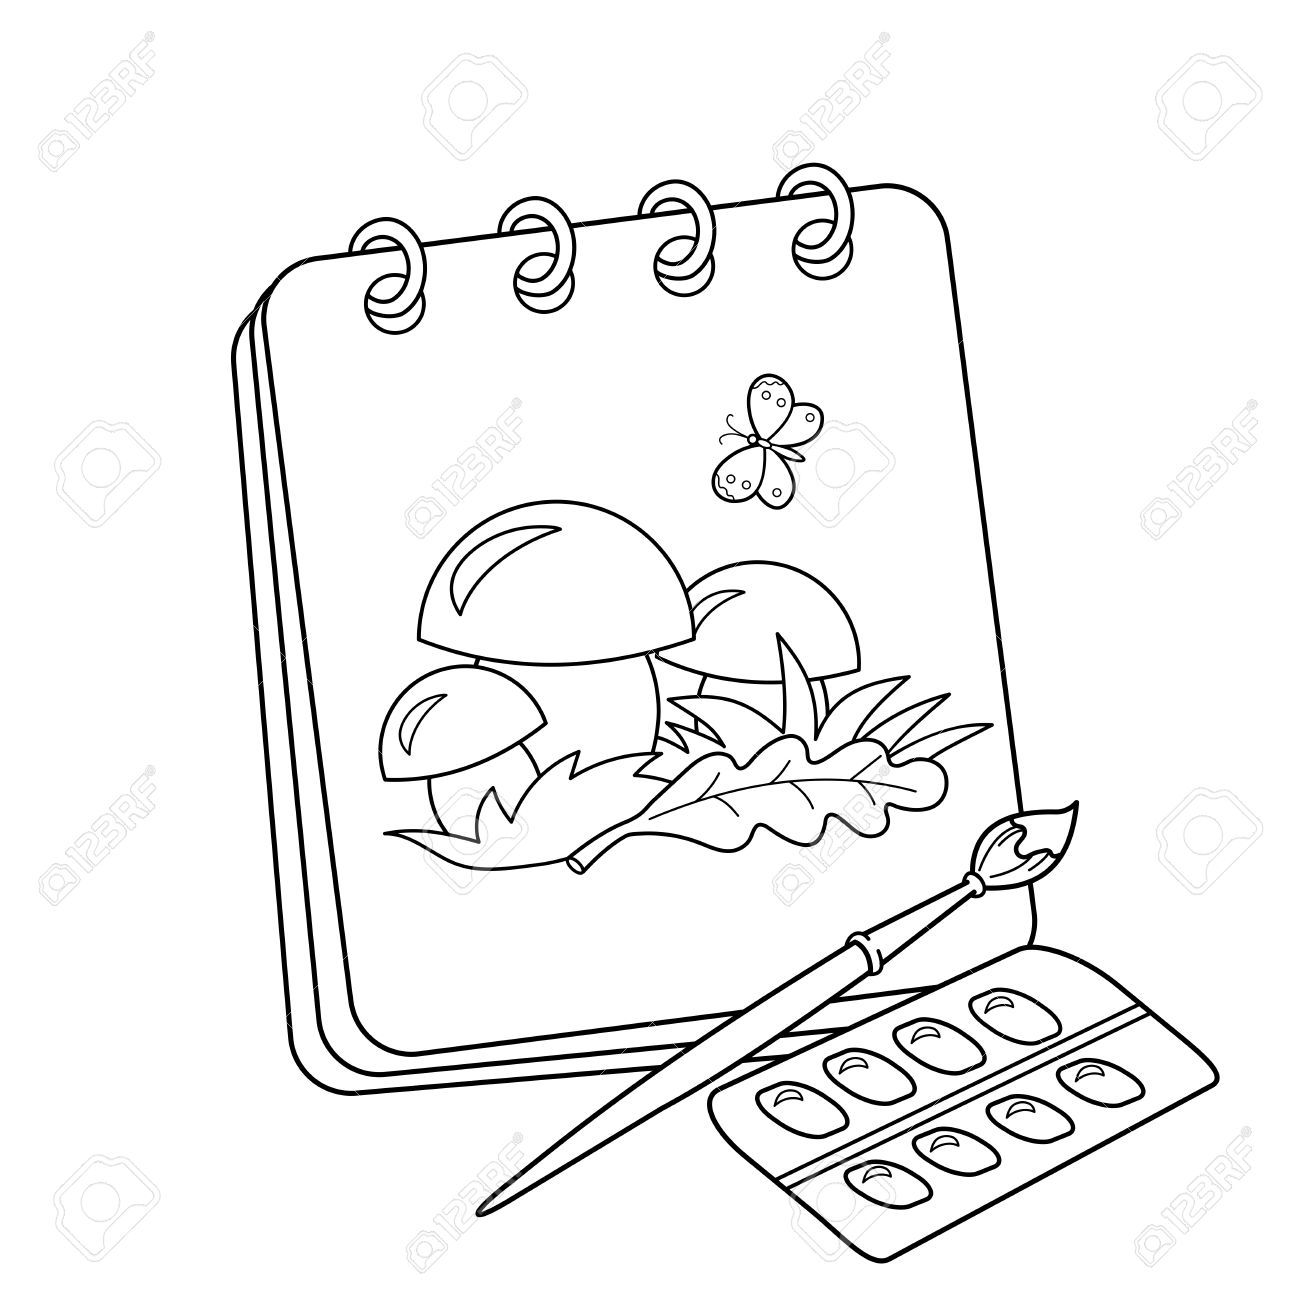 1300x1300 Coloring Page Outline Of Cartoon Album Or Sketchbook With Brush